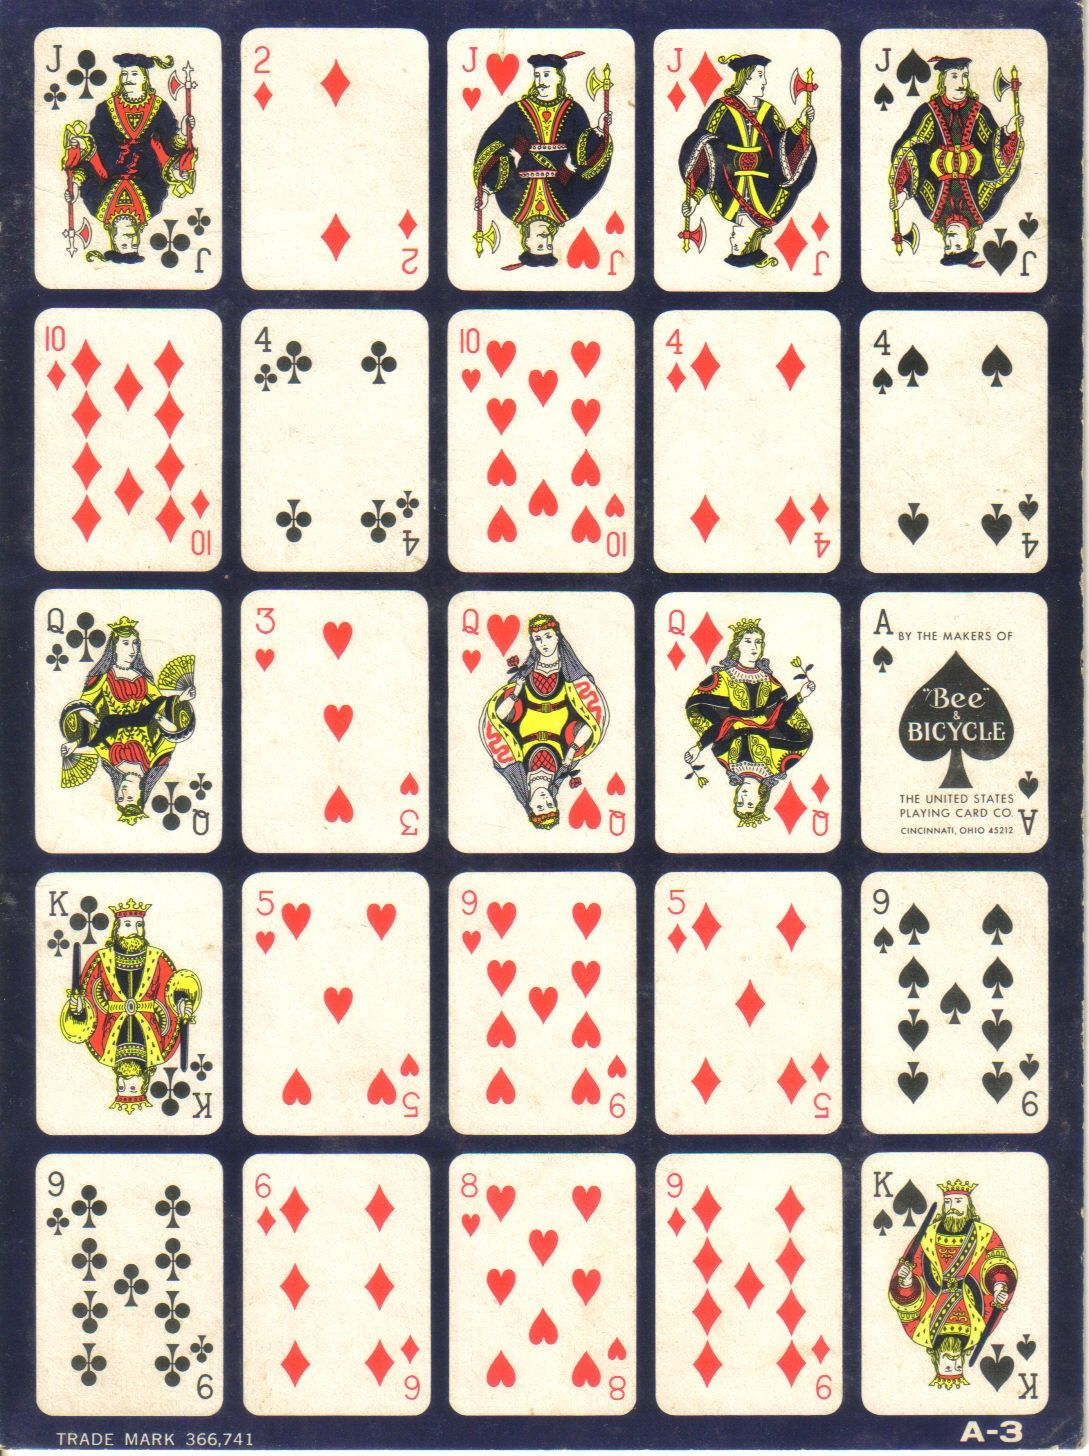 Games To Print For Free | 5 Best Images Of Printable Pokeno Game - Free Printable Pokeno Game Cards